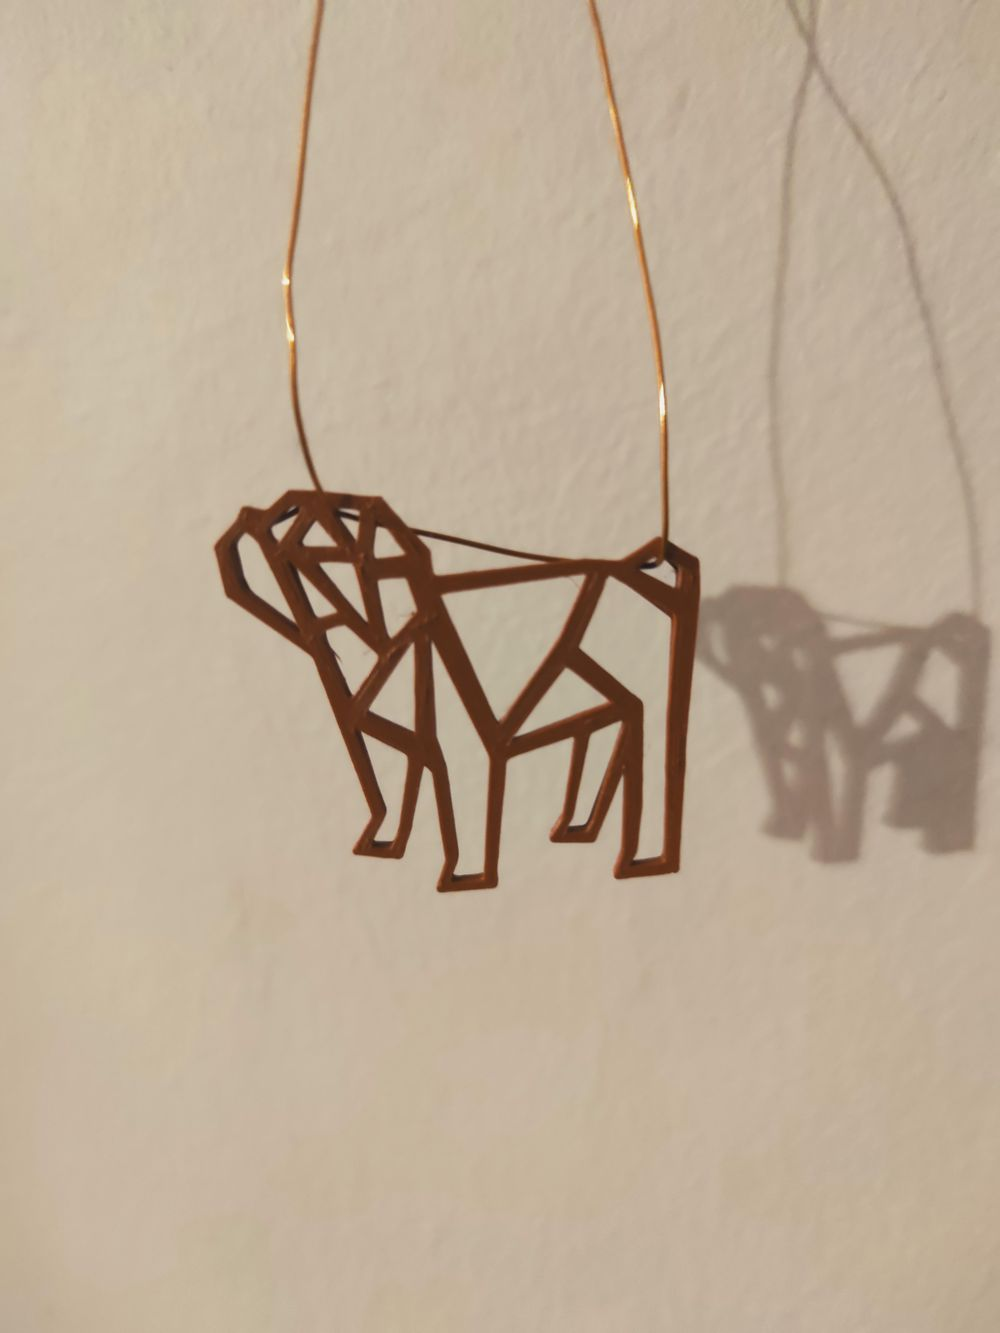 Bulldog necklace - image 2 - student project